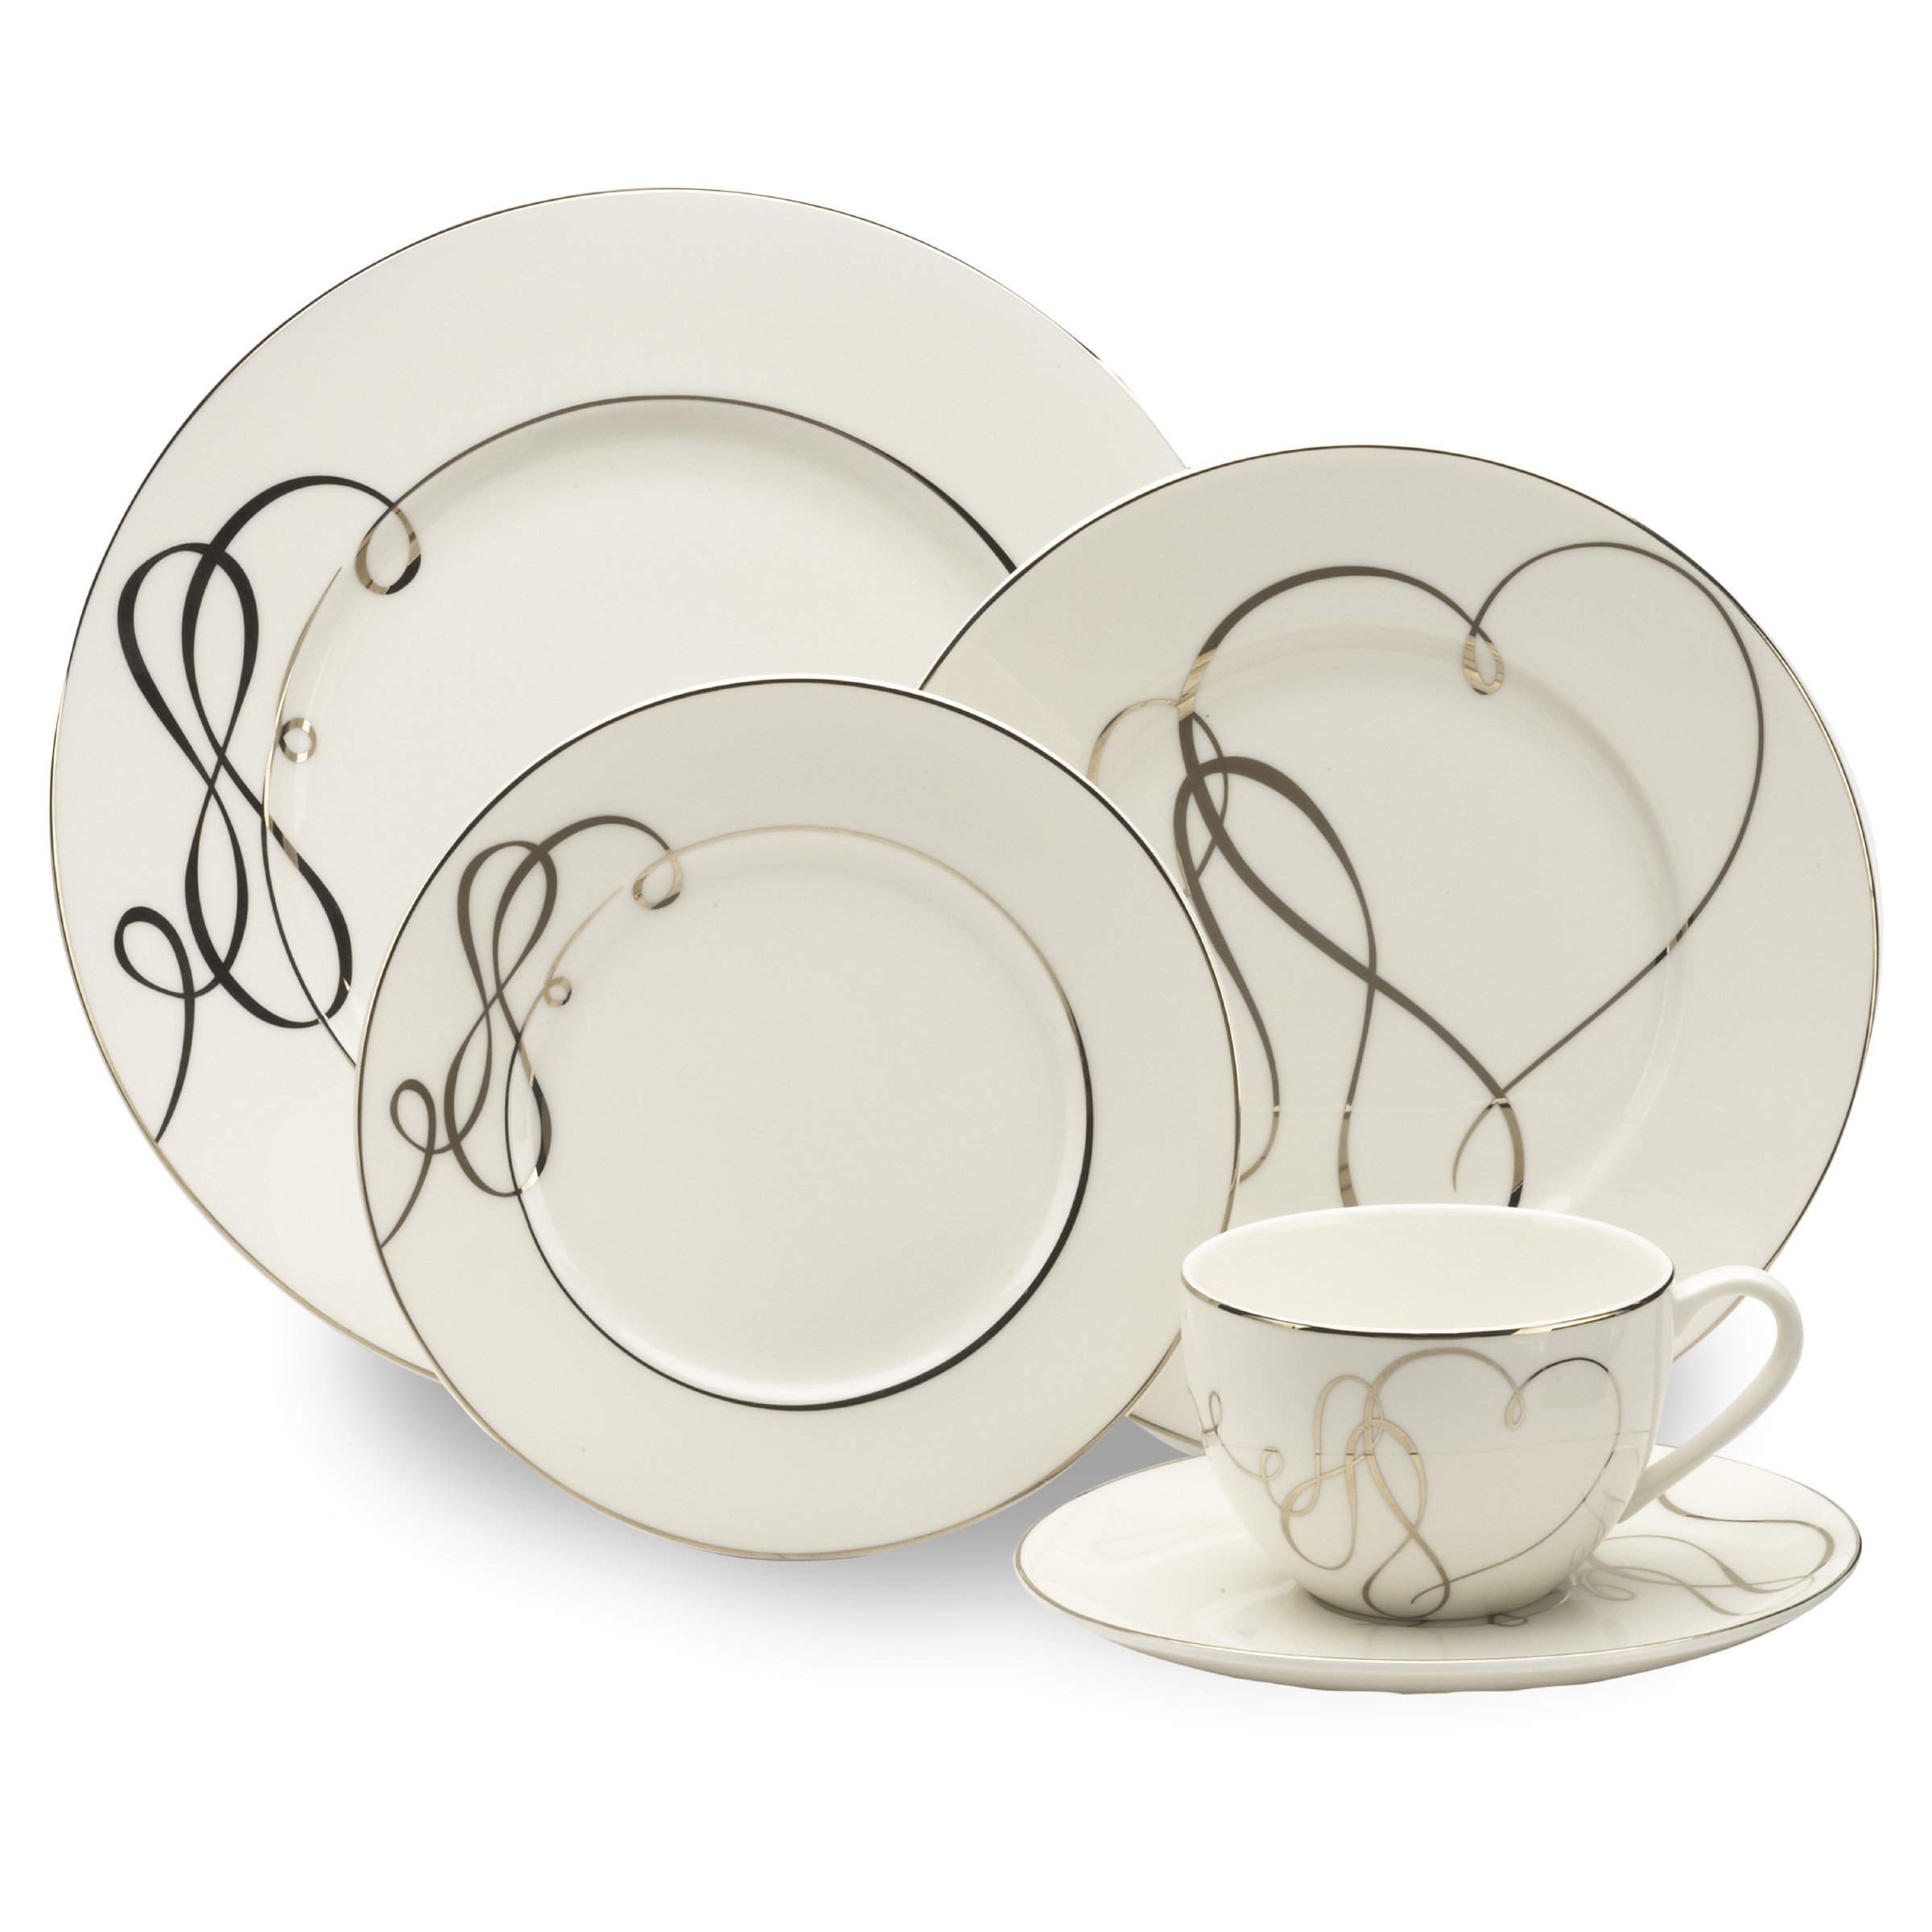 Mikasa Love Story 5-Piece Place Setting, Service for 1